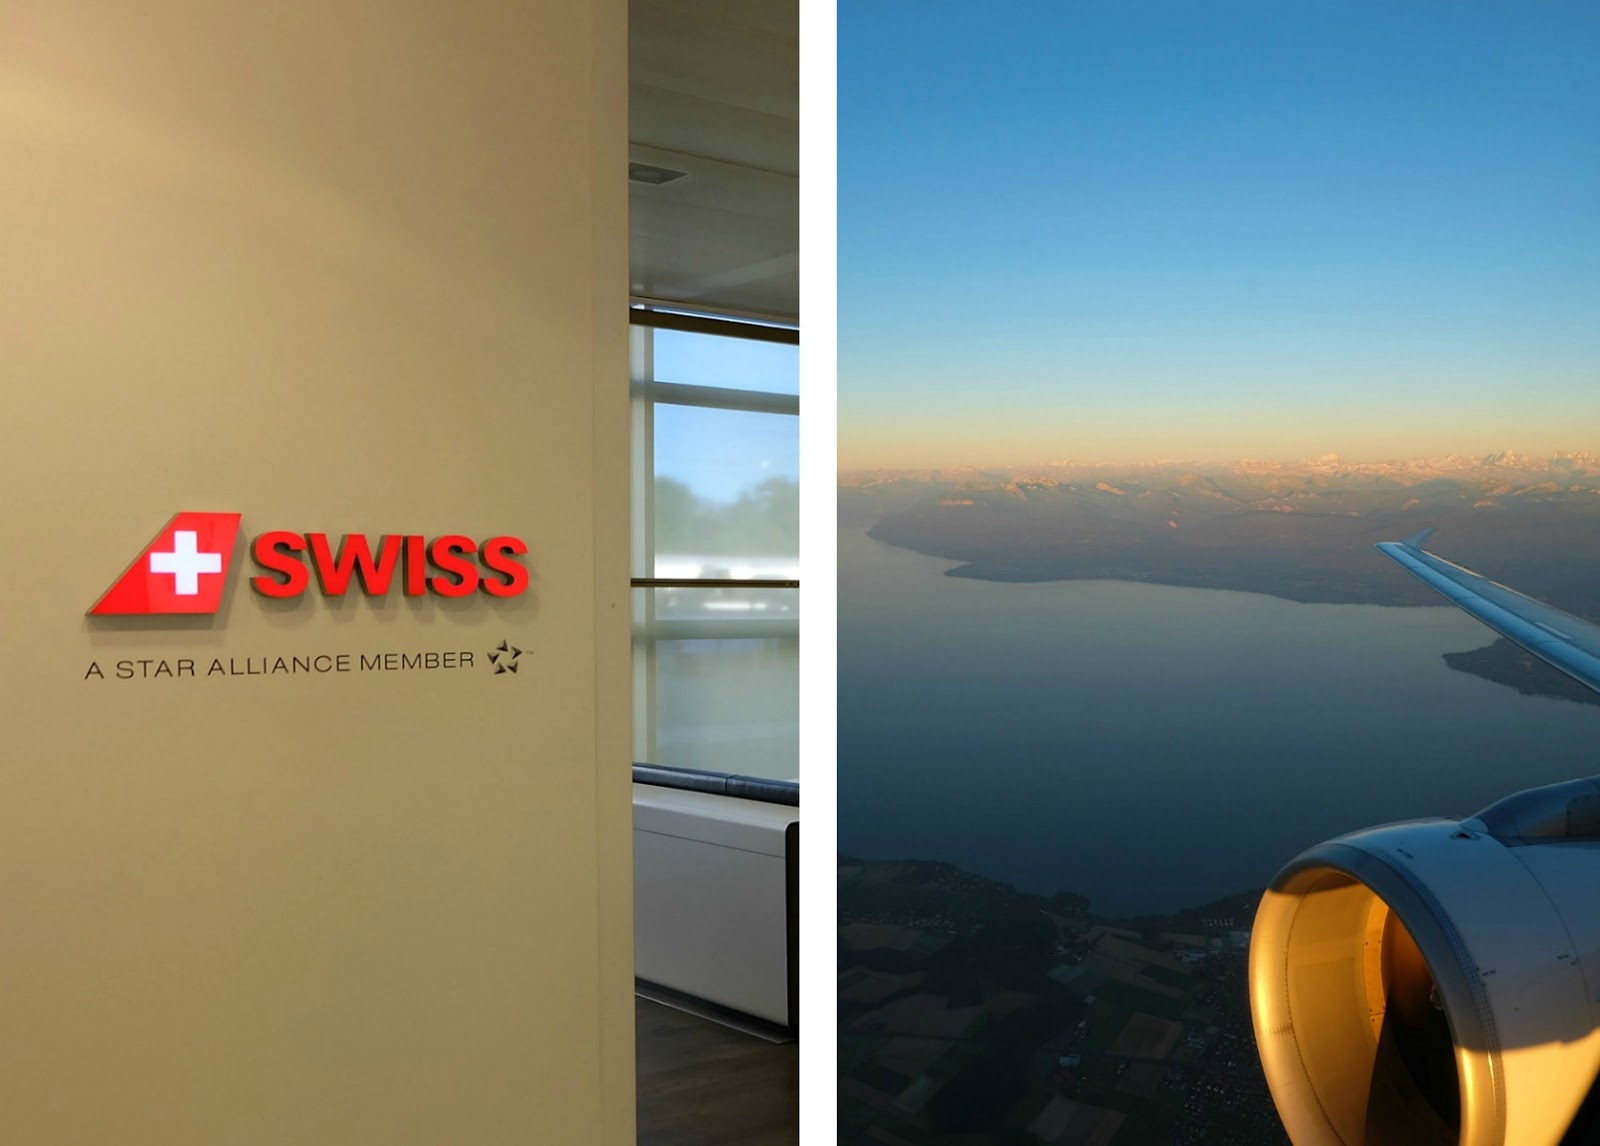 Flying Business Class with Swiss Air